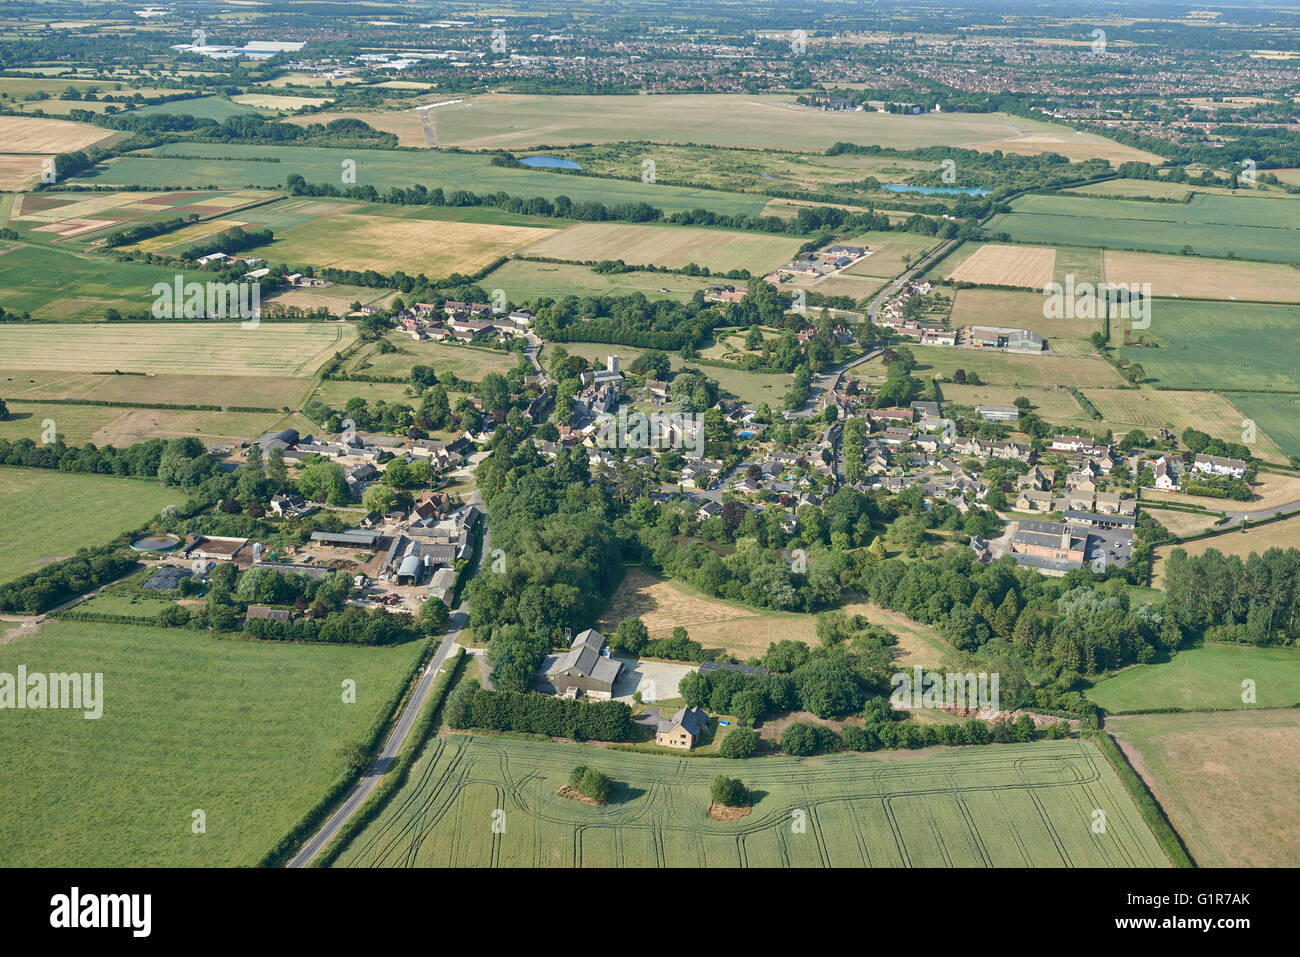 An aerial view of the Oxfordshire village of Stratton Audley and surrounding countryside - Stock Image